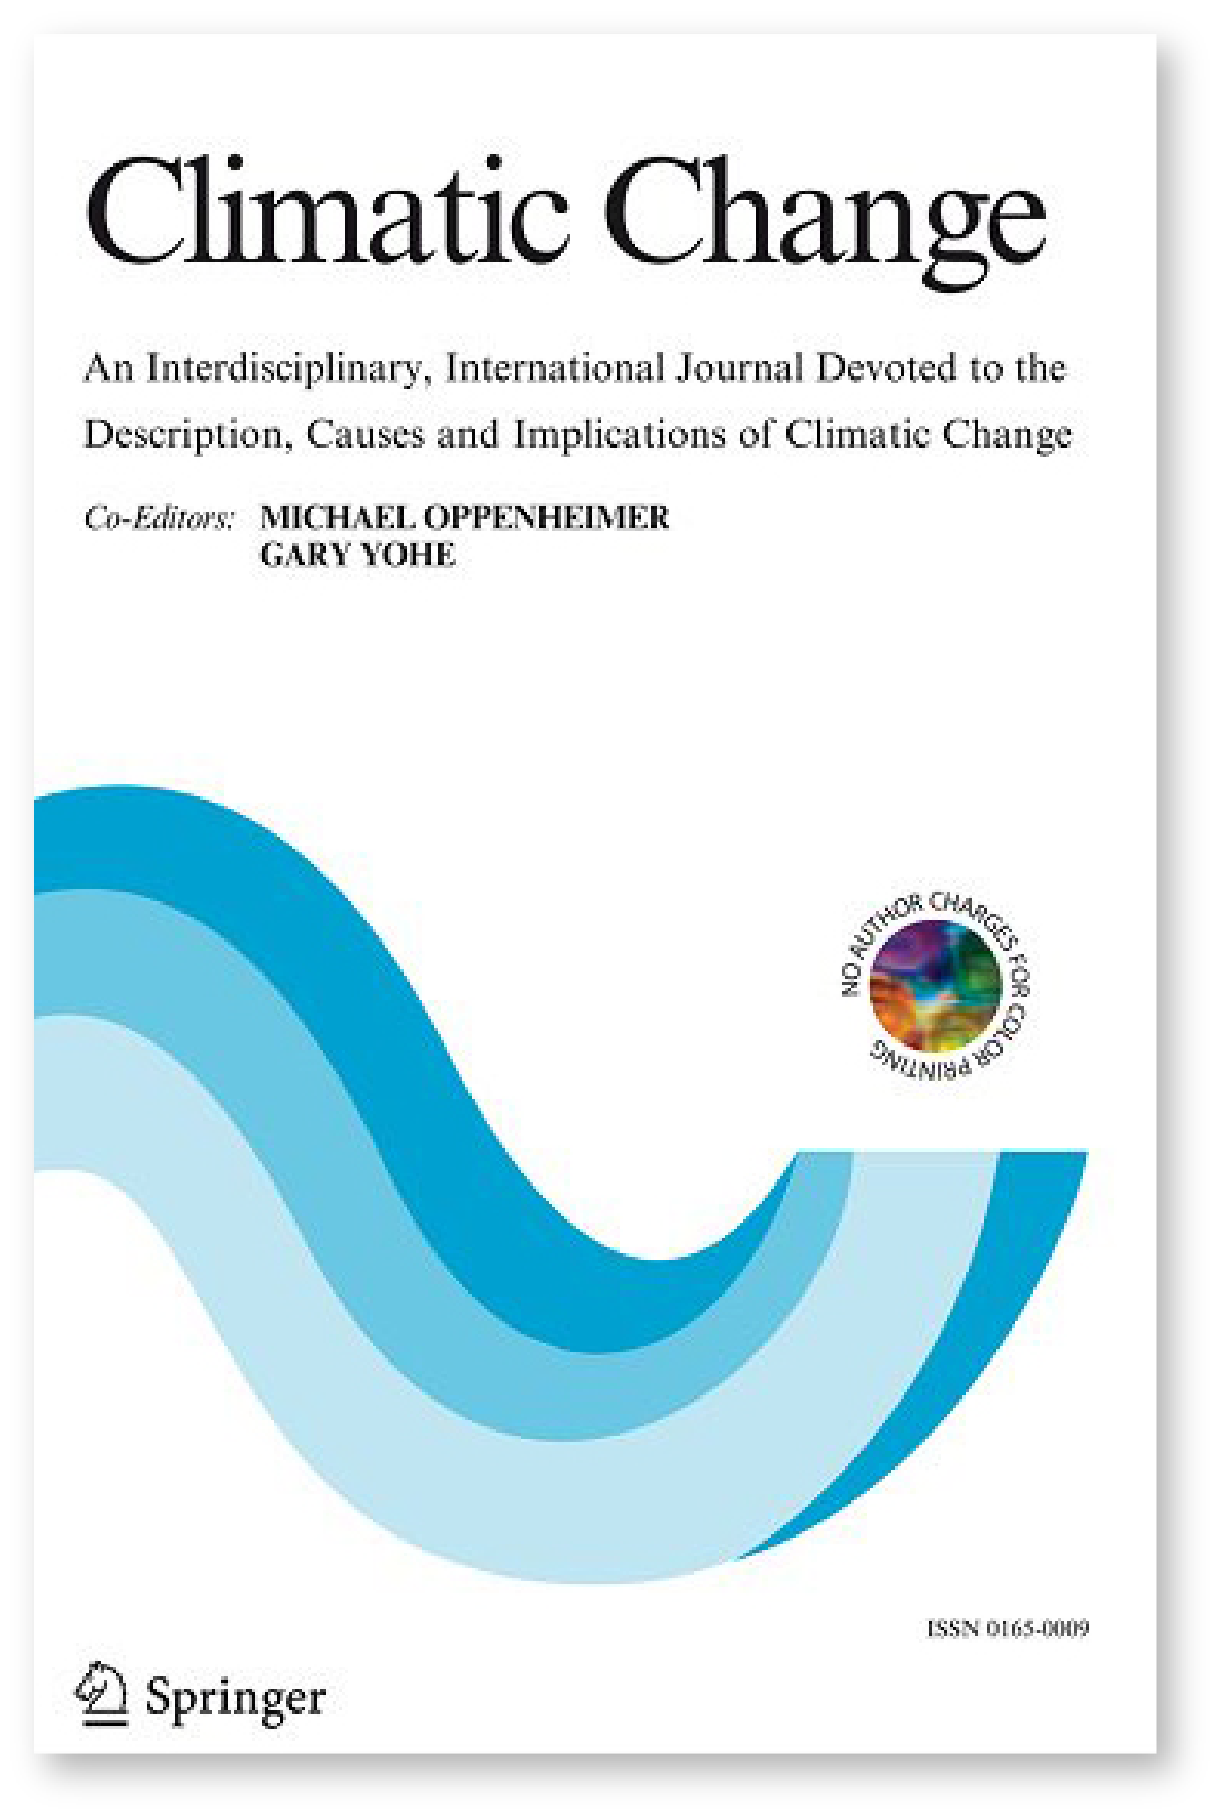 climatic-change-journal-cover